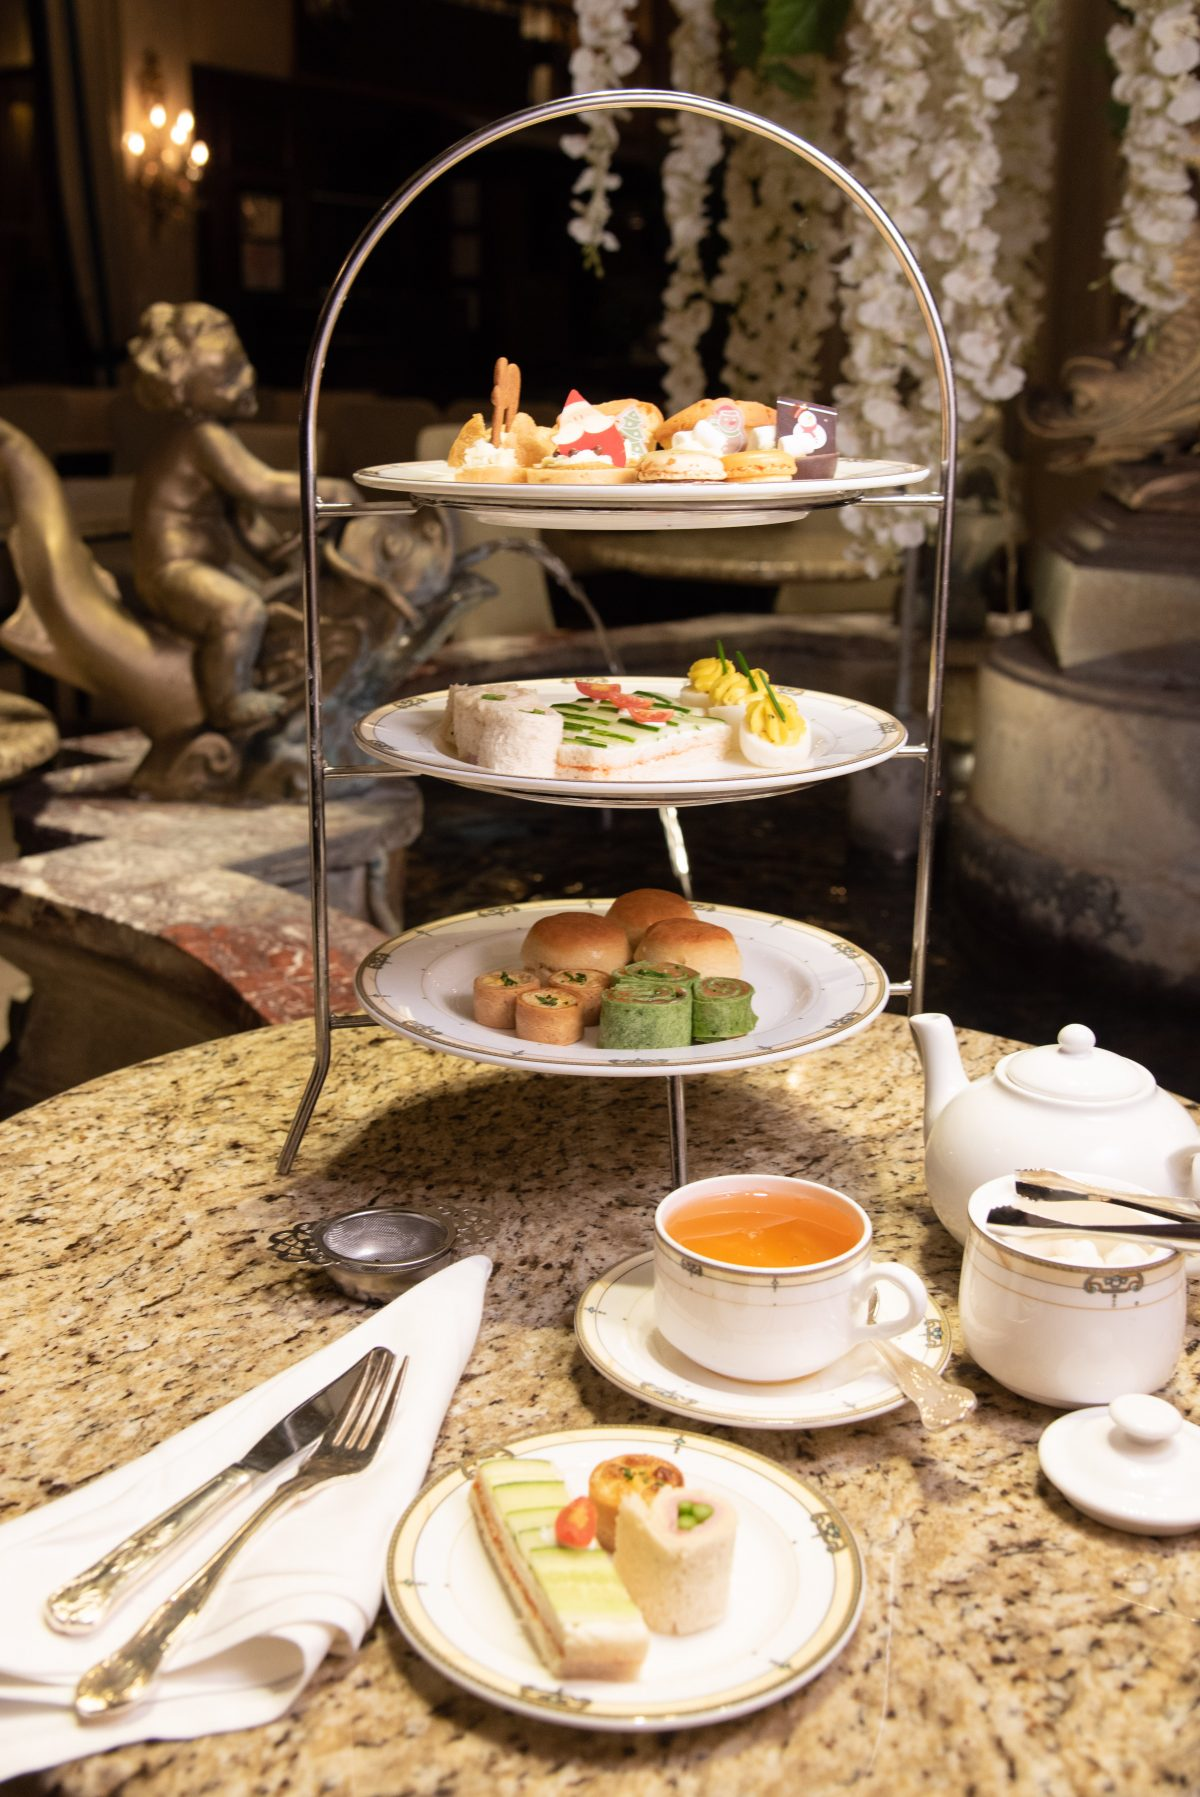 Afternoon tea at The Drake in Chicago